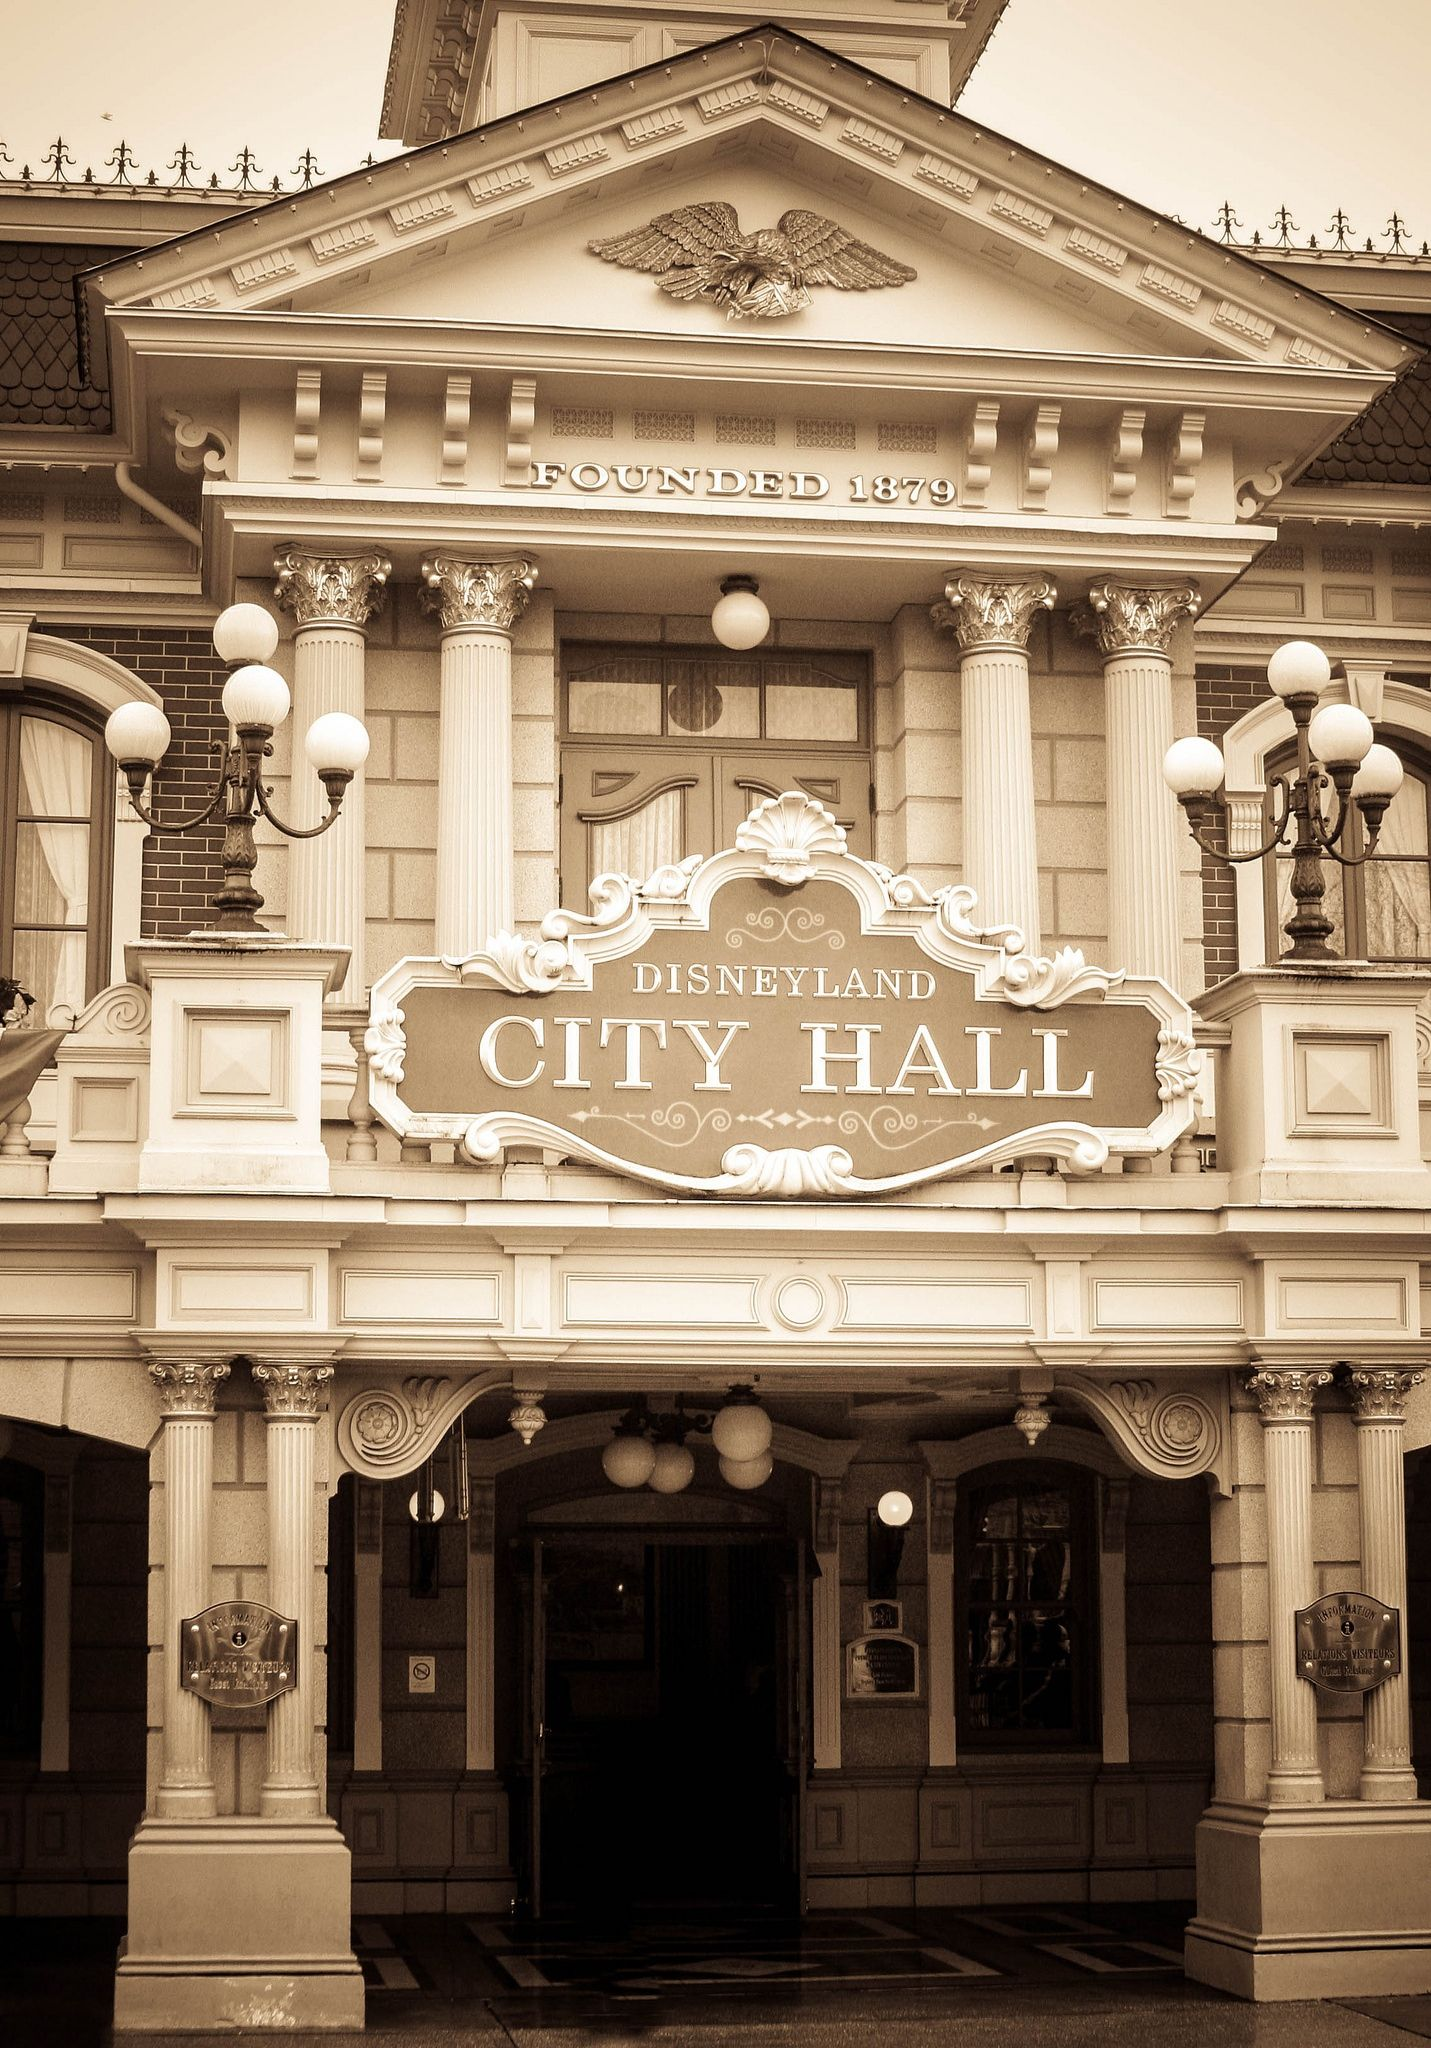 City Hall Disneyland Paris O Disneyland Paris O Pinterest - What city is disneyland in